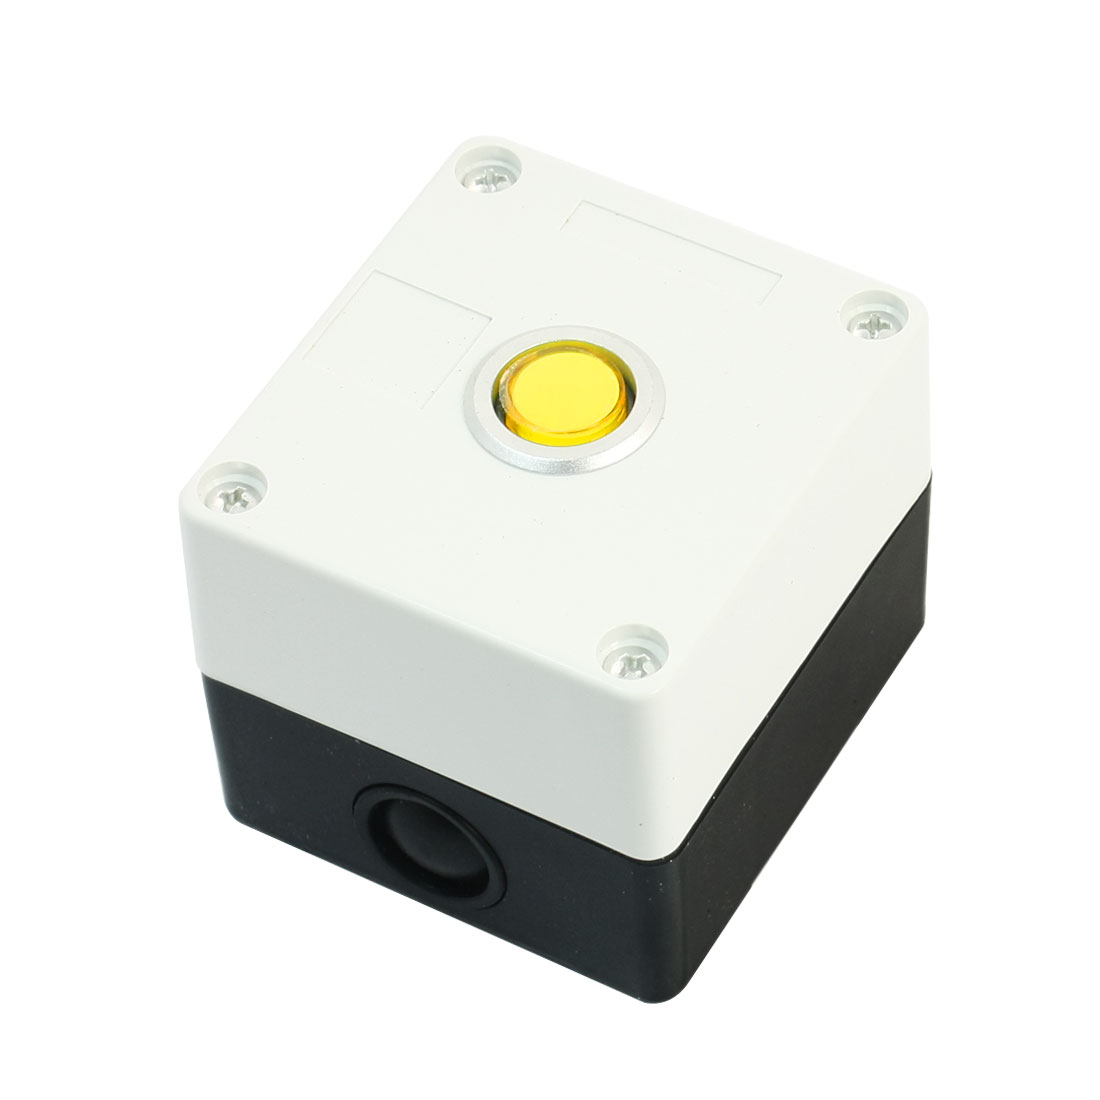 AC 220V 5A SPDT 5-Pin 1NO 1NC Latching White Plastic Case Yellow Pilot Lamp Push Button Station Switch Control Box